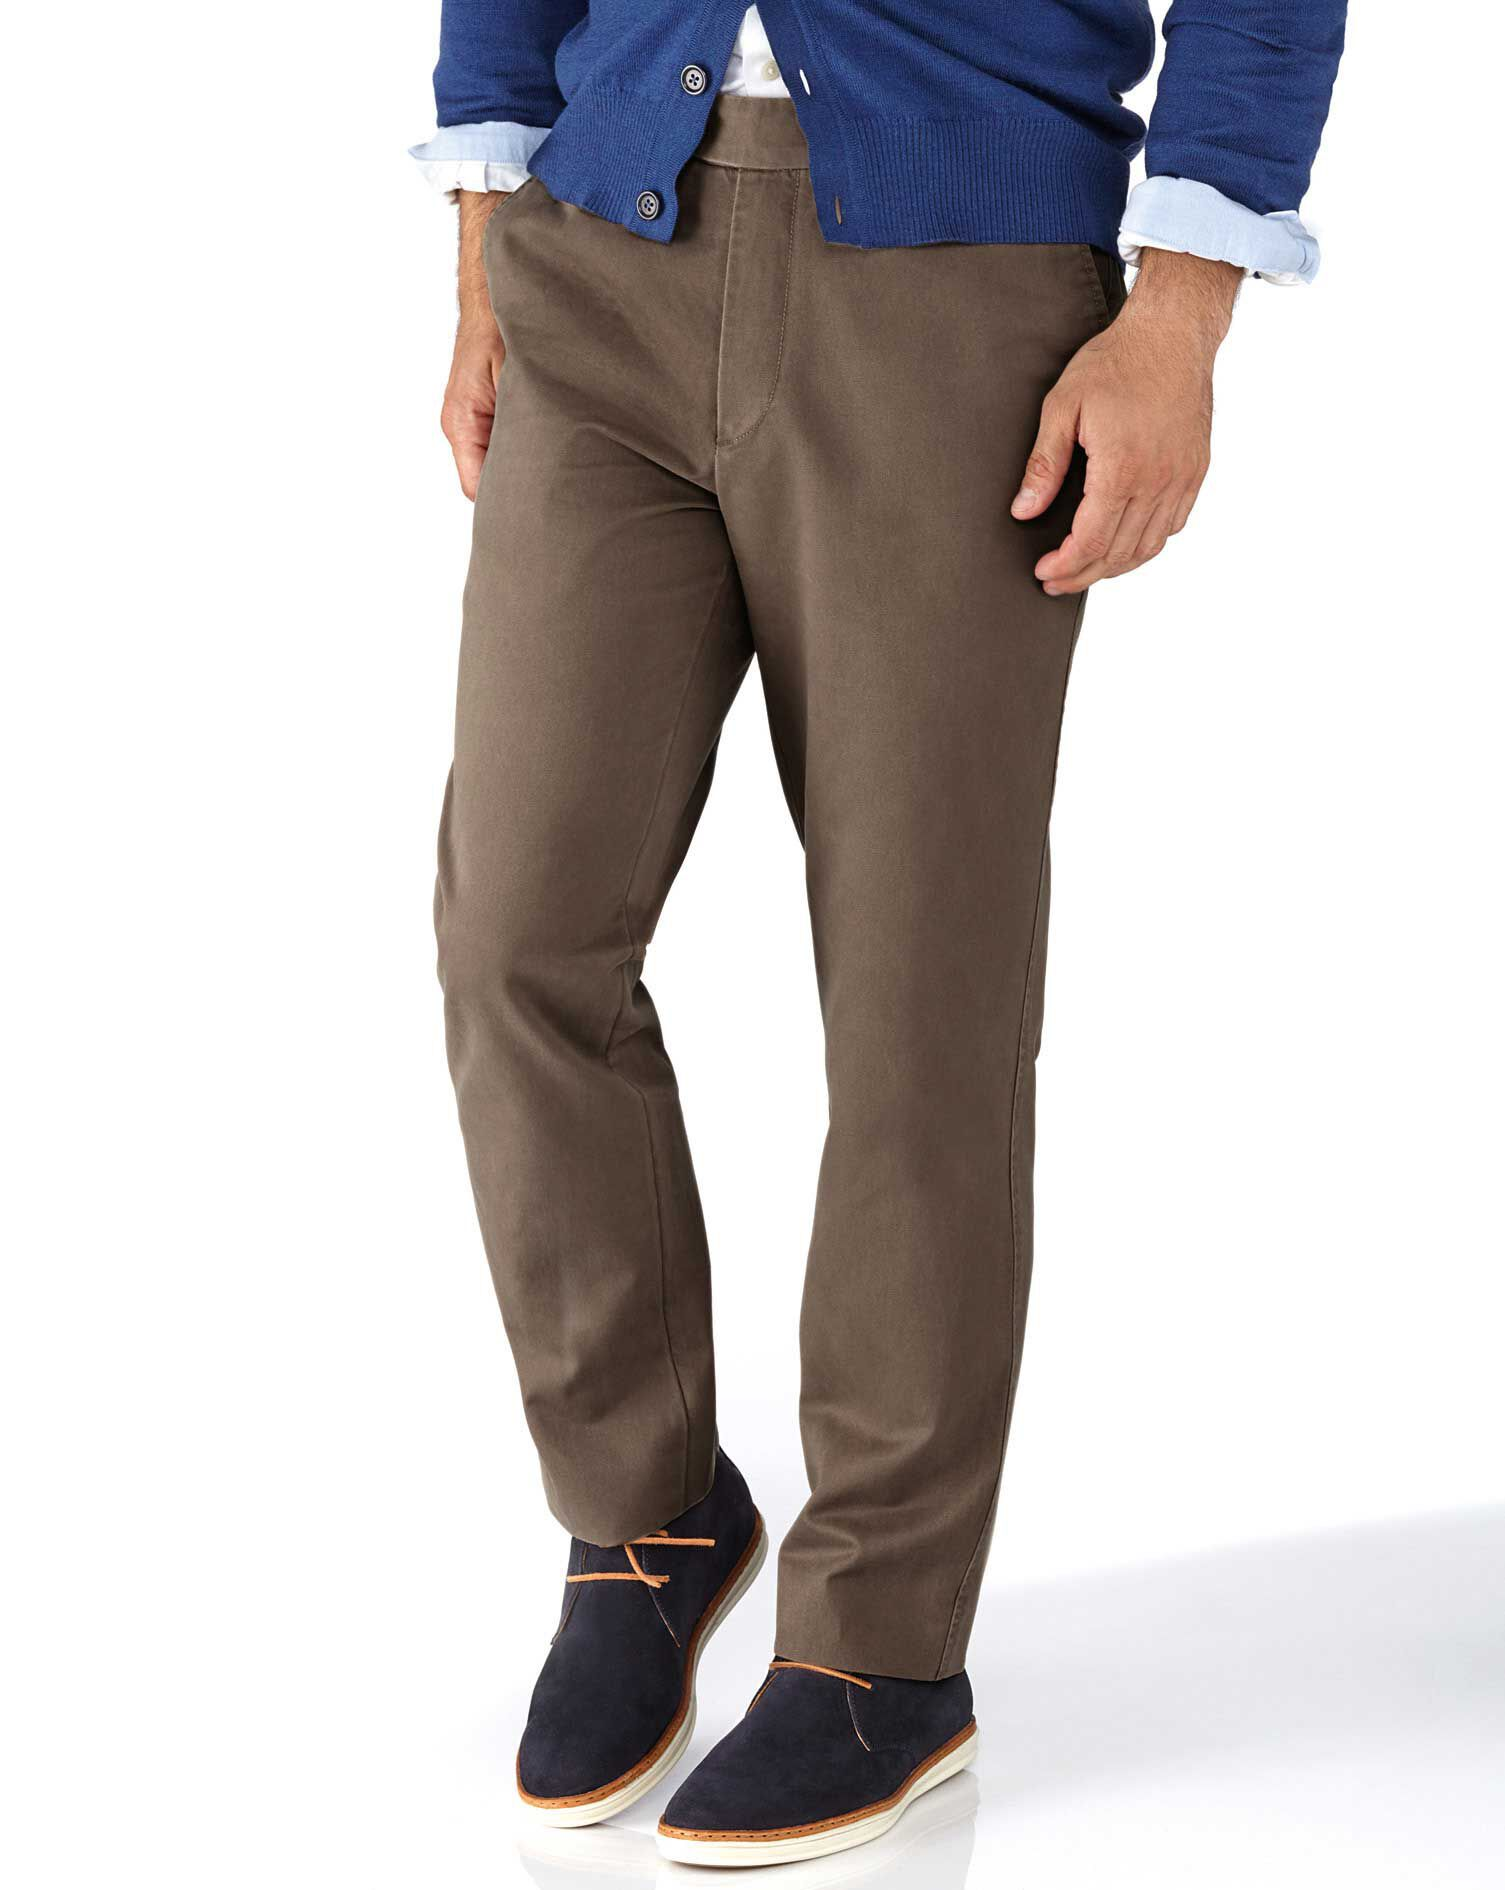 Light Brown Slim Fit Flat Front Cotton Chino Trousers Size W30 L38 by Charles Tyrwhitt